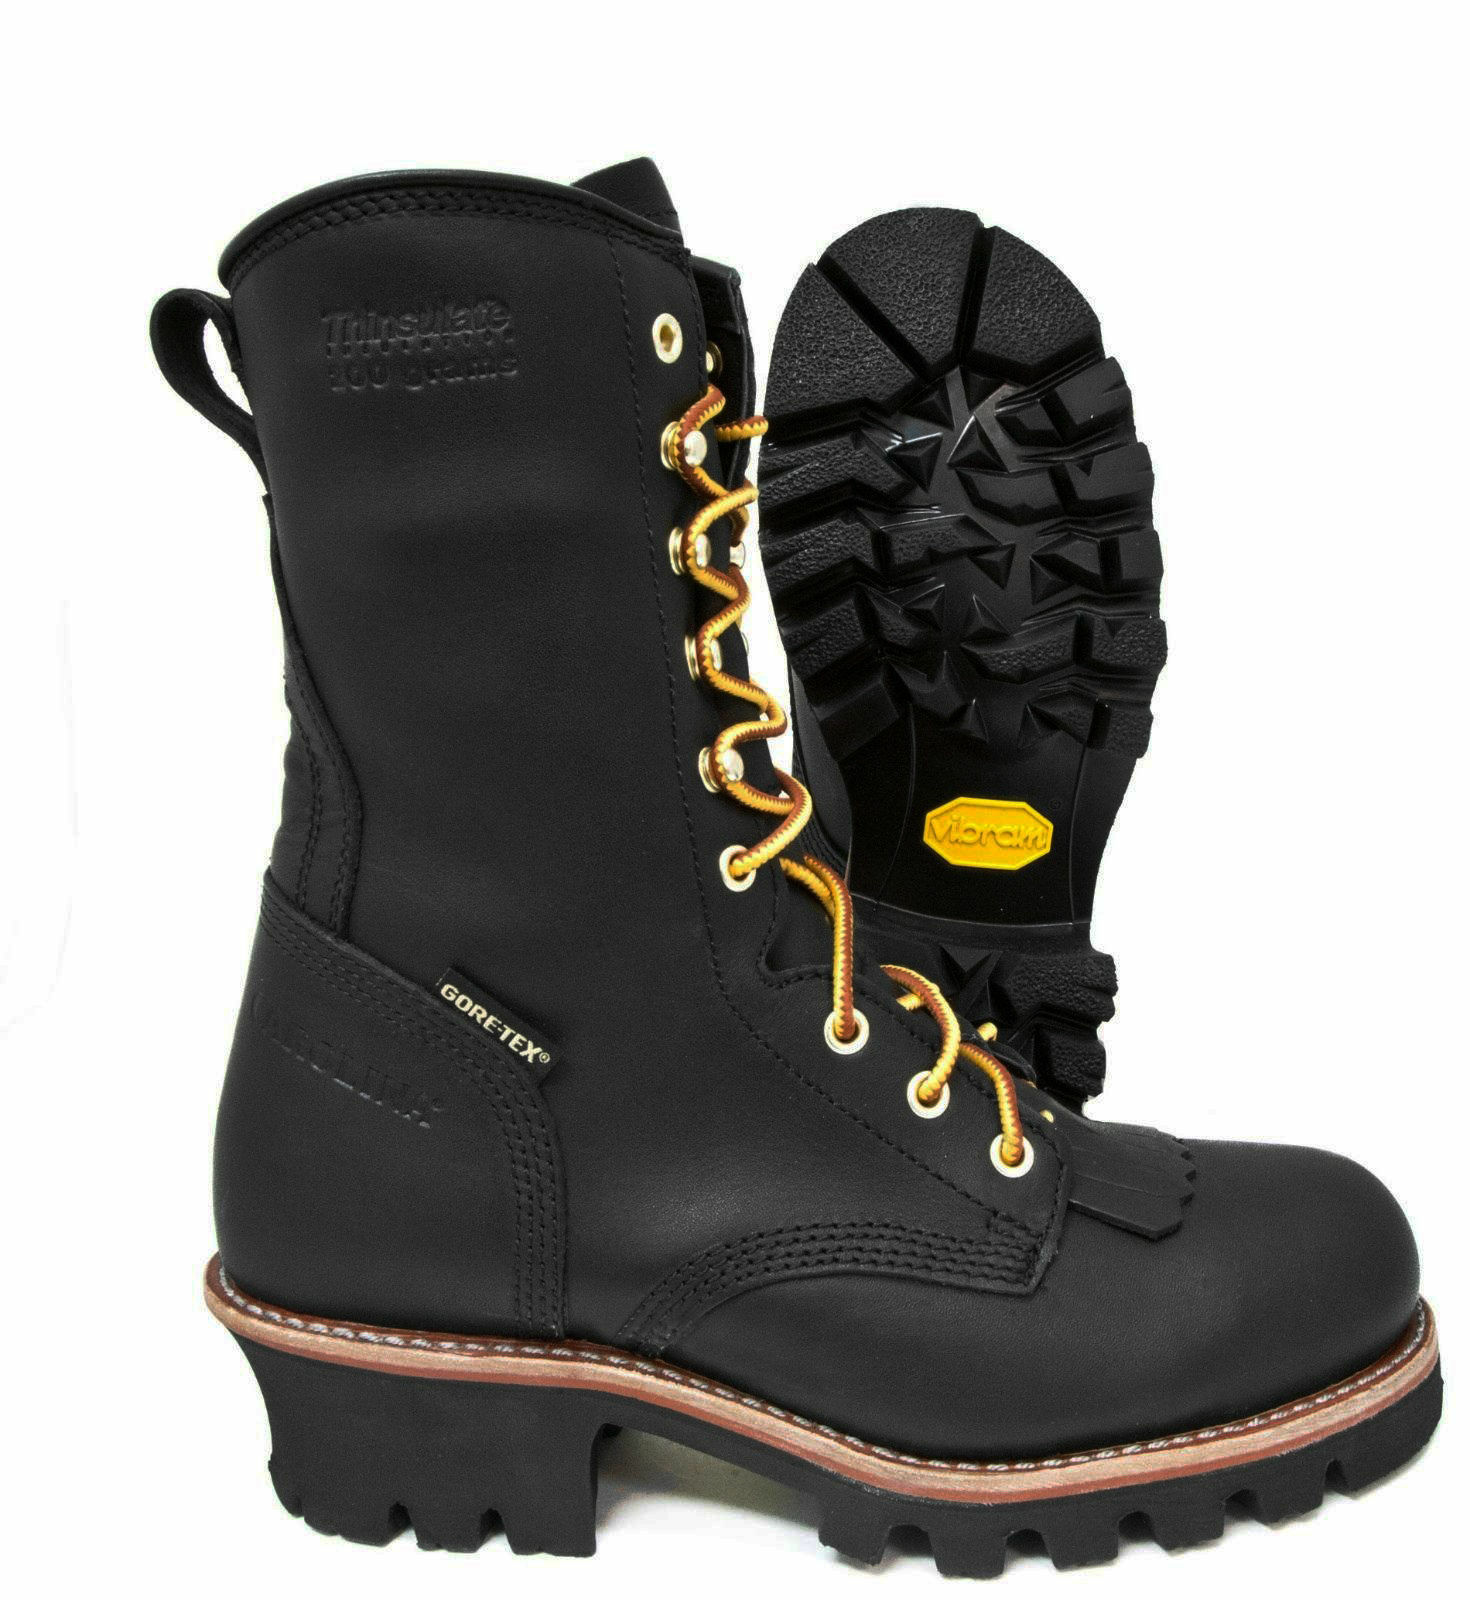 Top 10 Safety Shoes